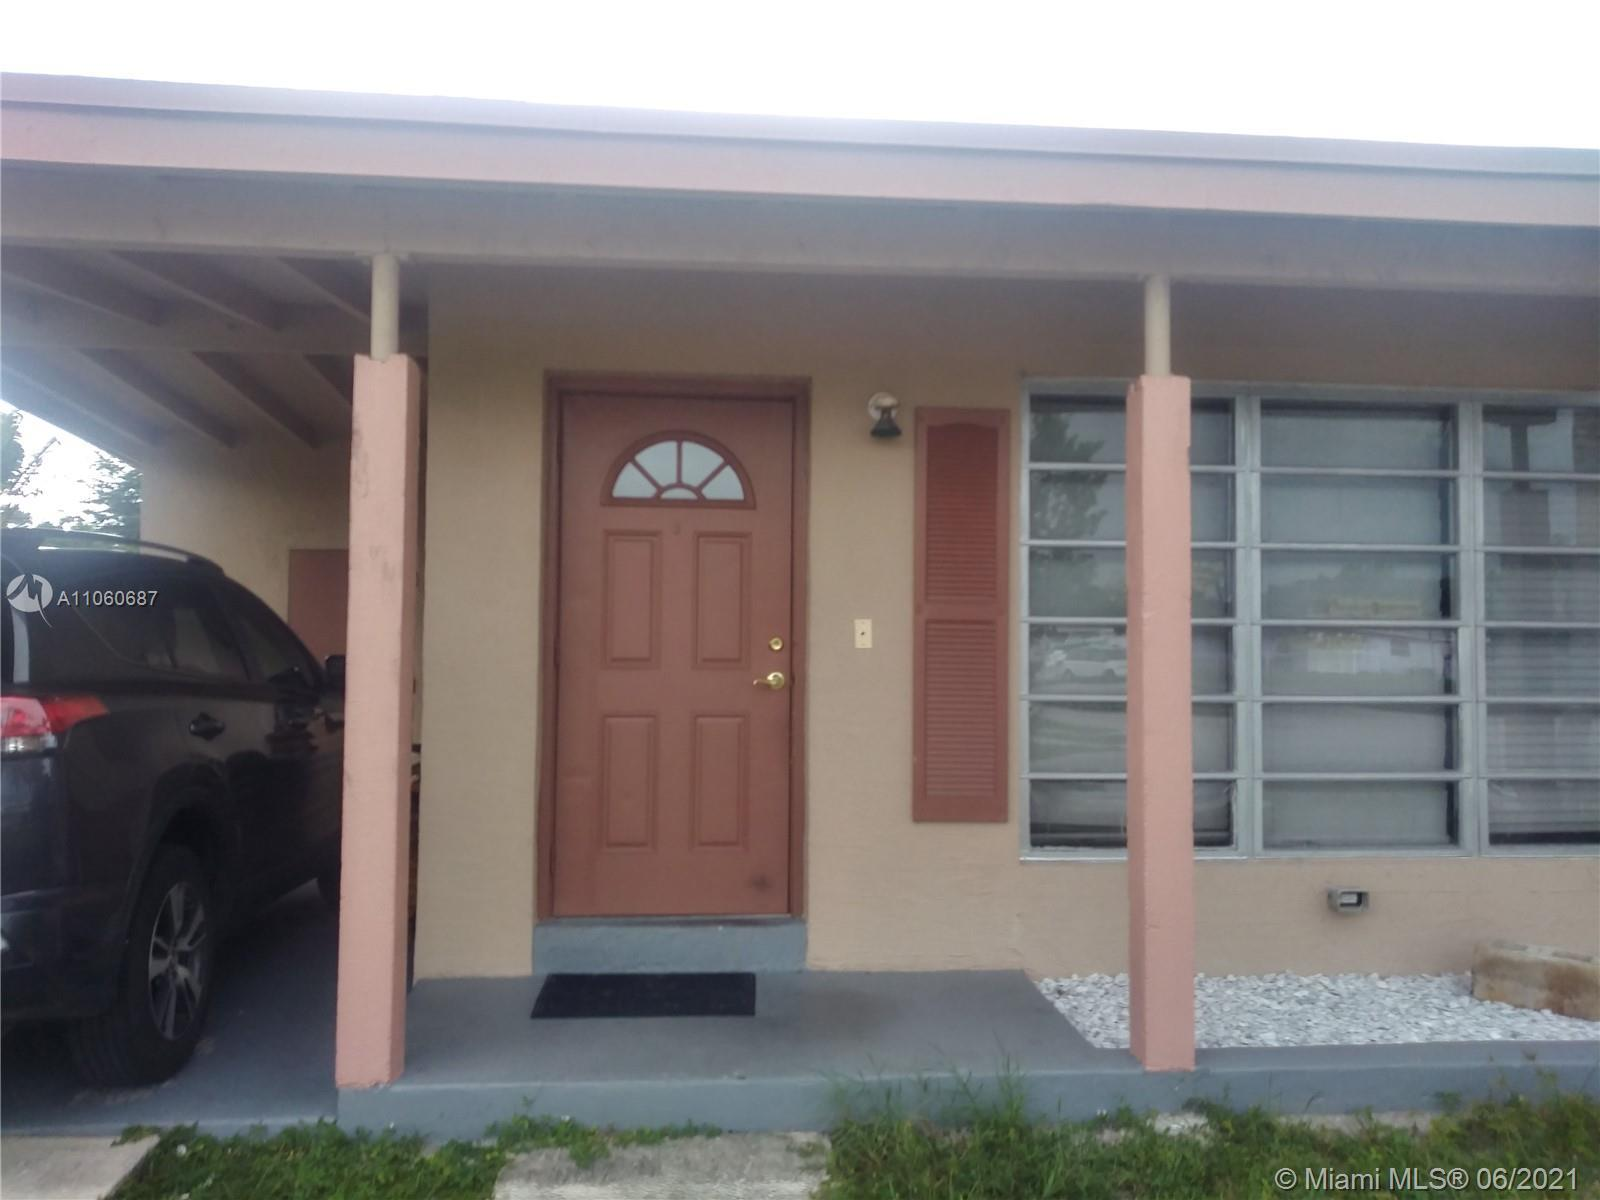 Great home in pompano near US1, 2/1 plus a den. Property is occupied by the Owner. Kitchen has gran